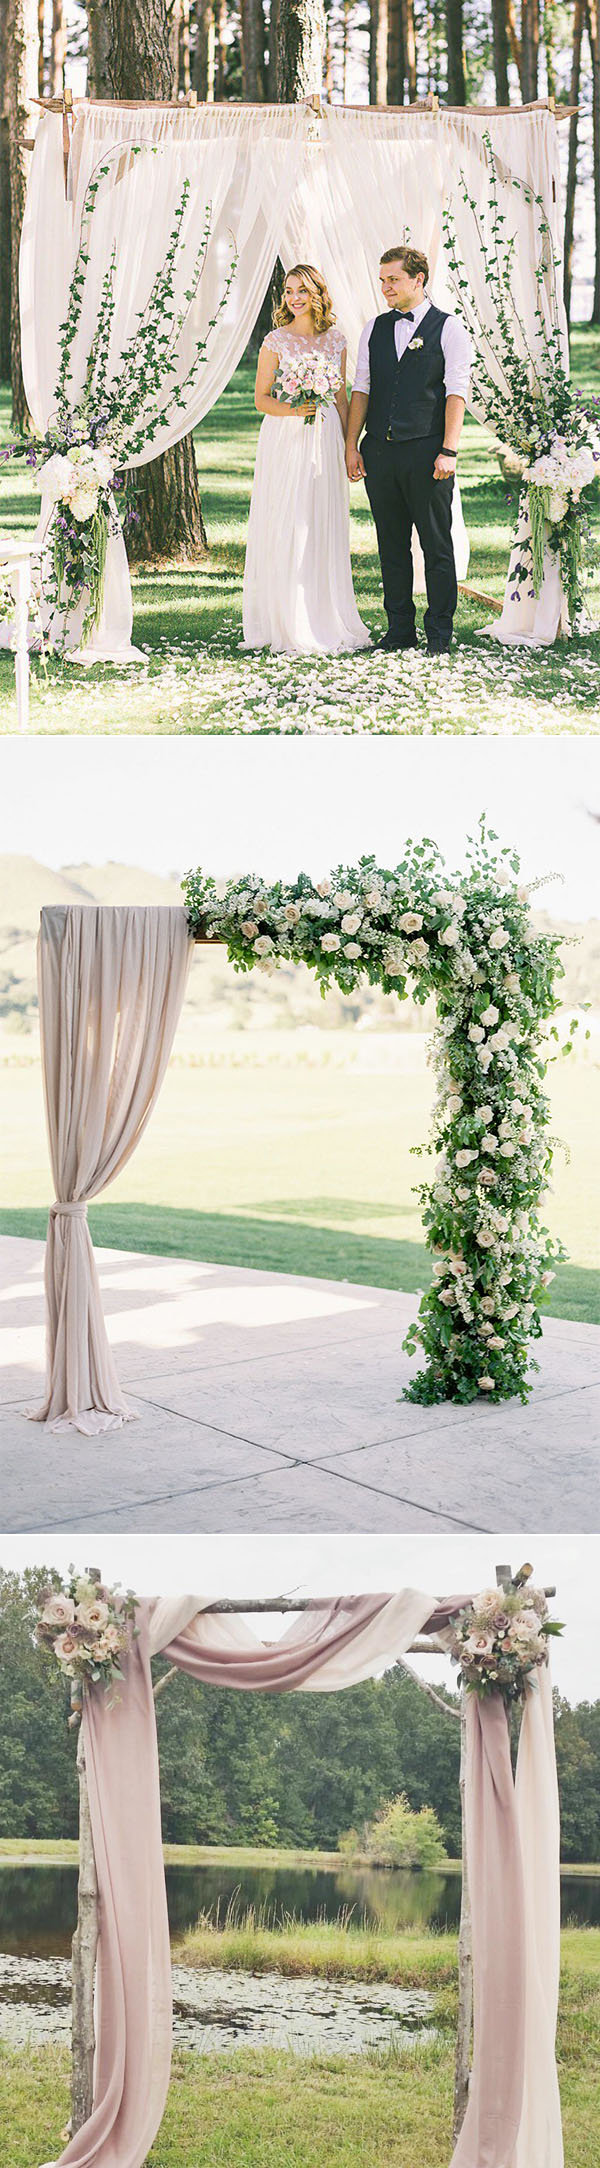 floral and drapery romantic wedding arch decoration ideas for 2018 trends